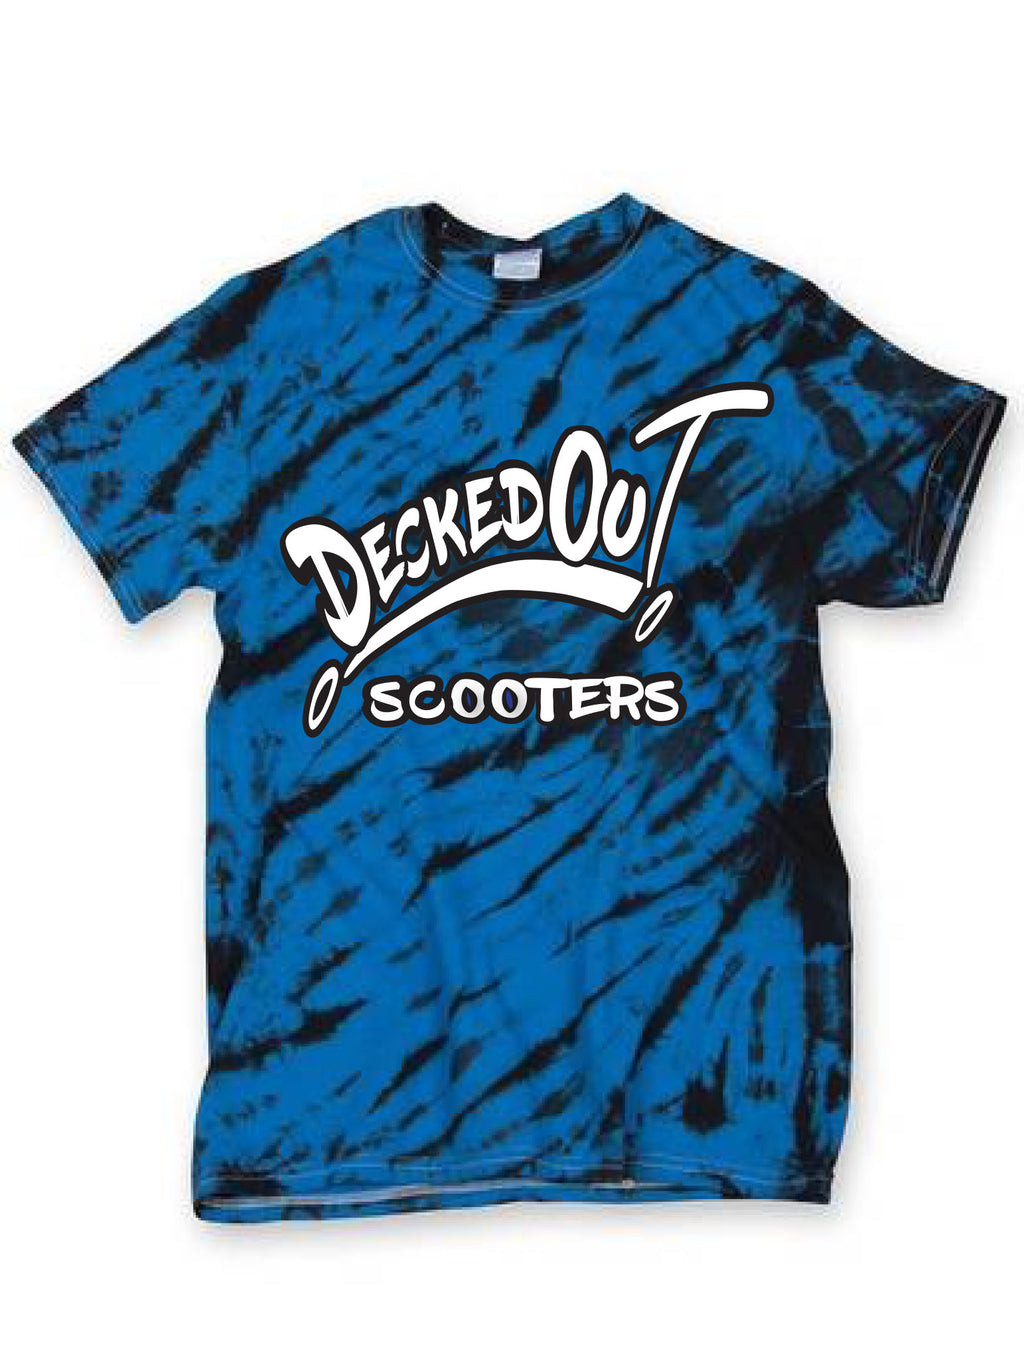 DeckedOut T-Shirt -- Special Edition - DeckedOut Scooters